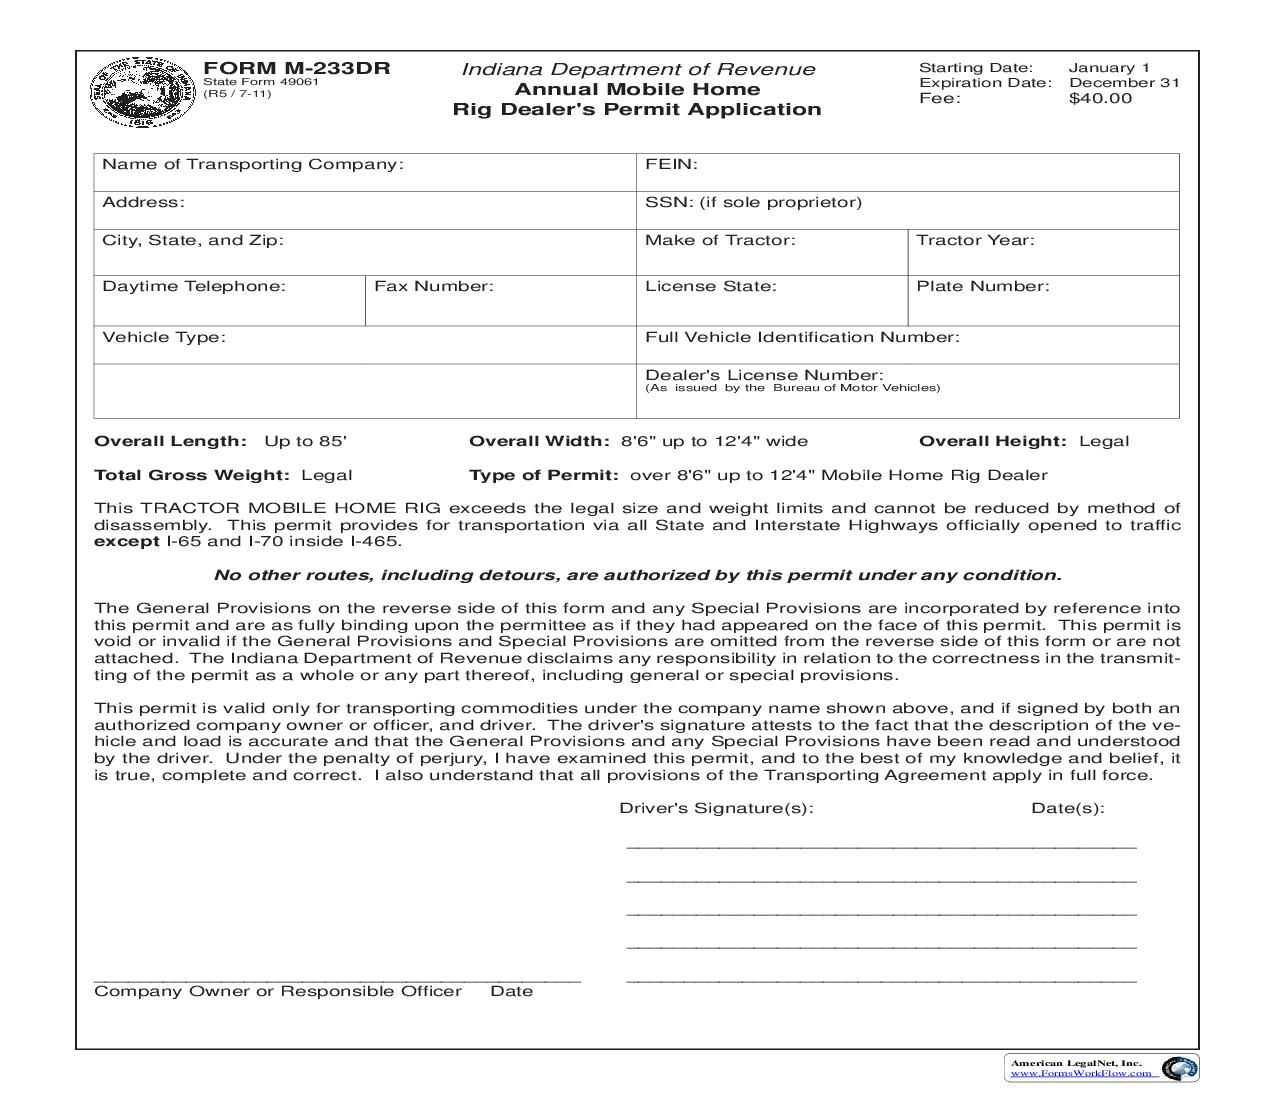 Annual Mobile Home Rig Dealers Permit Application {M-233DR} | Pdf Fpdf Doc Docx | Indiana